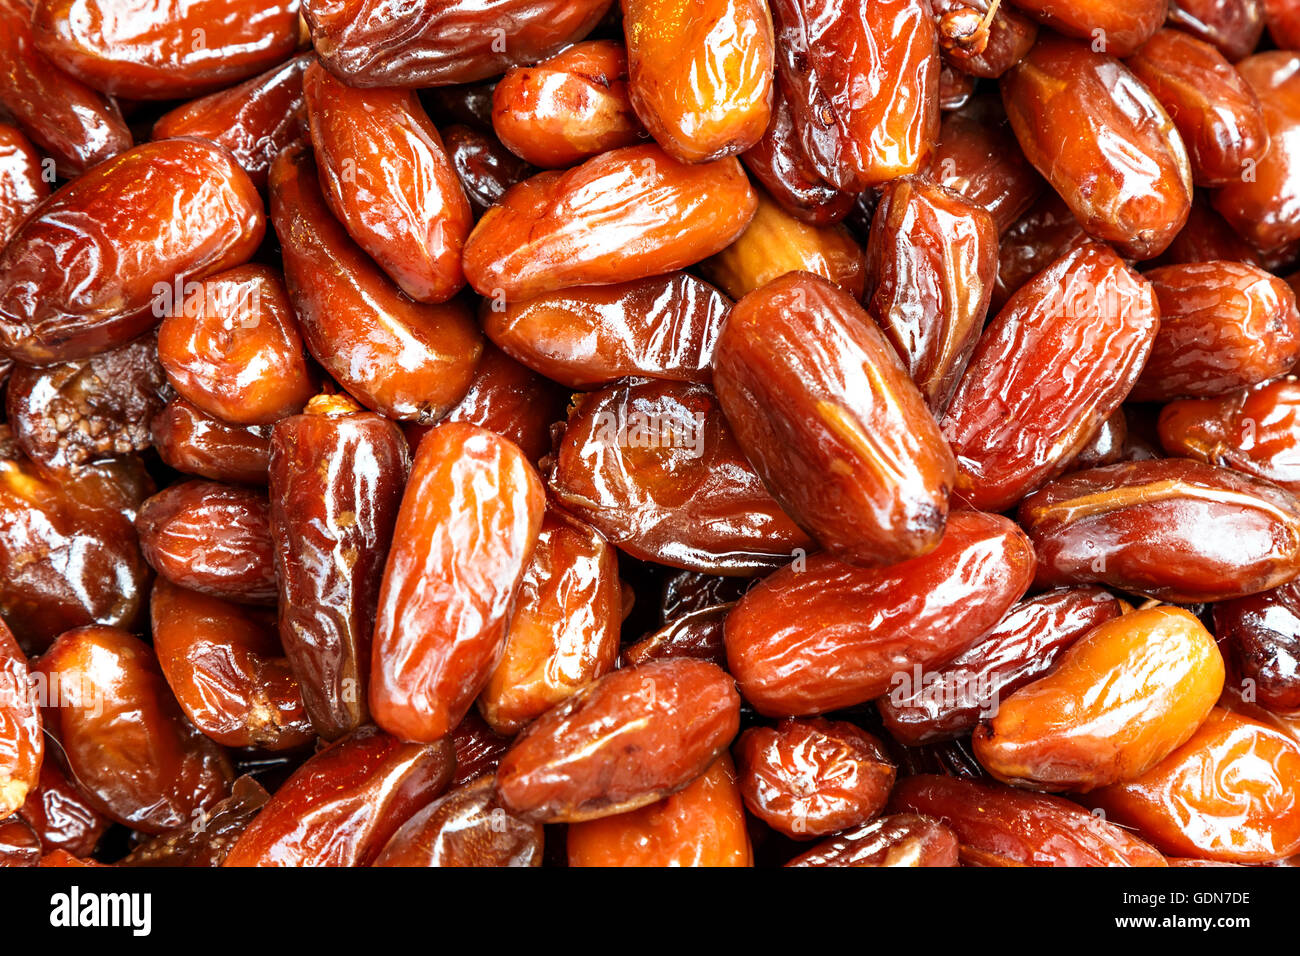 Date palm on a traditional craftsman market.Horizontal image. - Stock Image